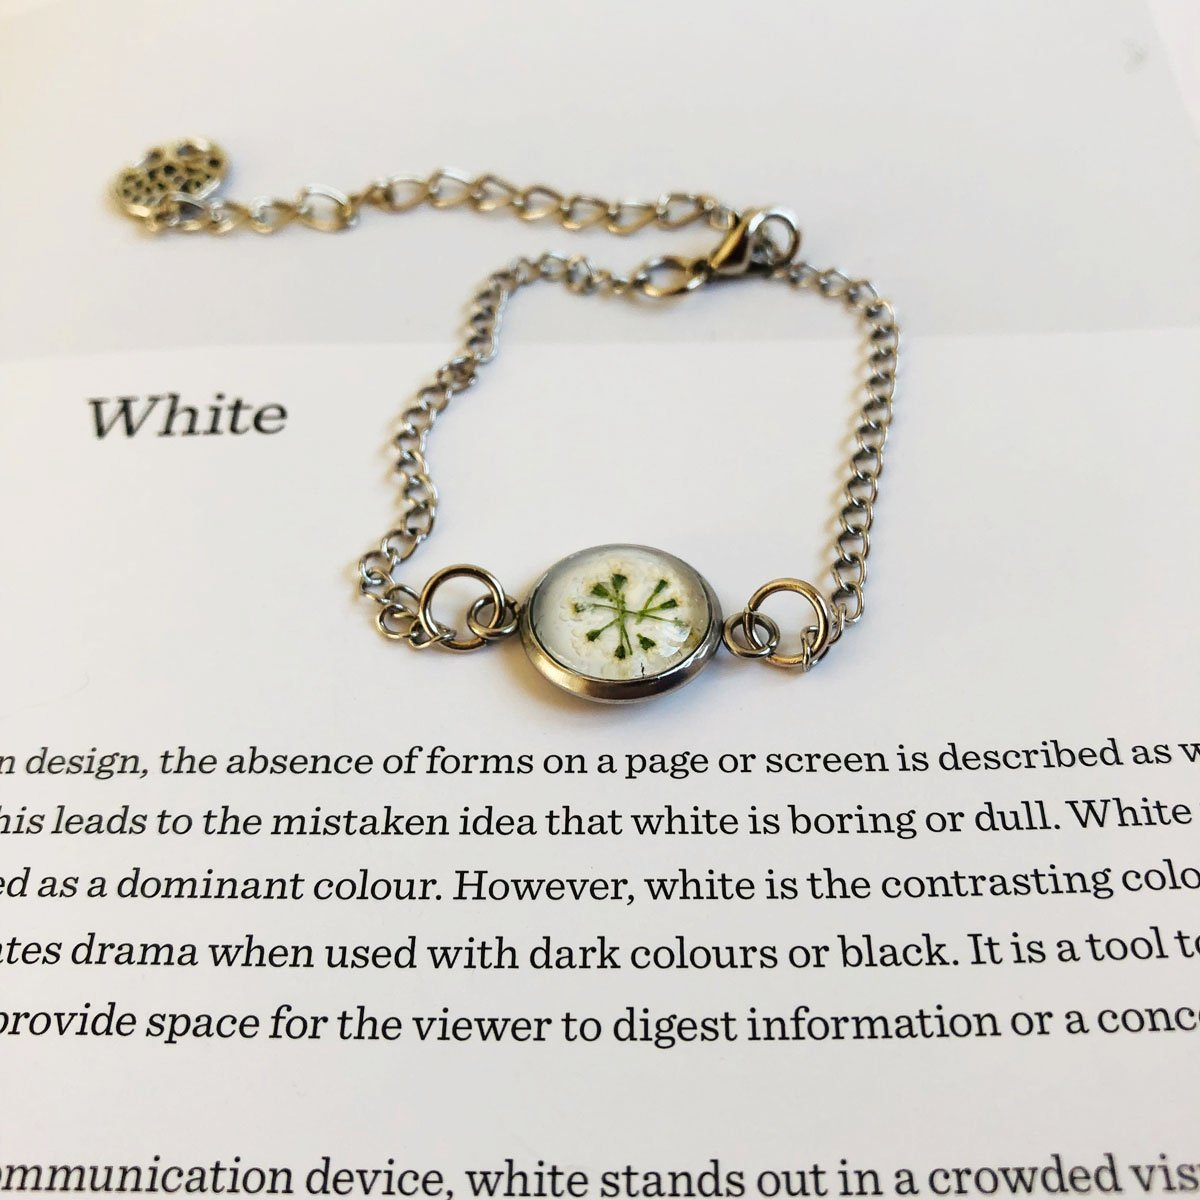 White | Baby's breath bracelet